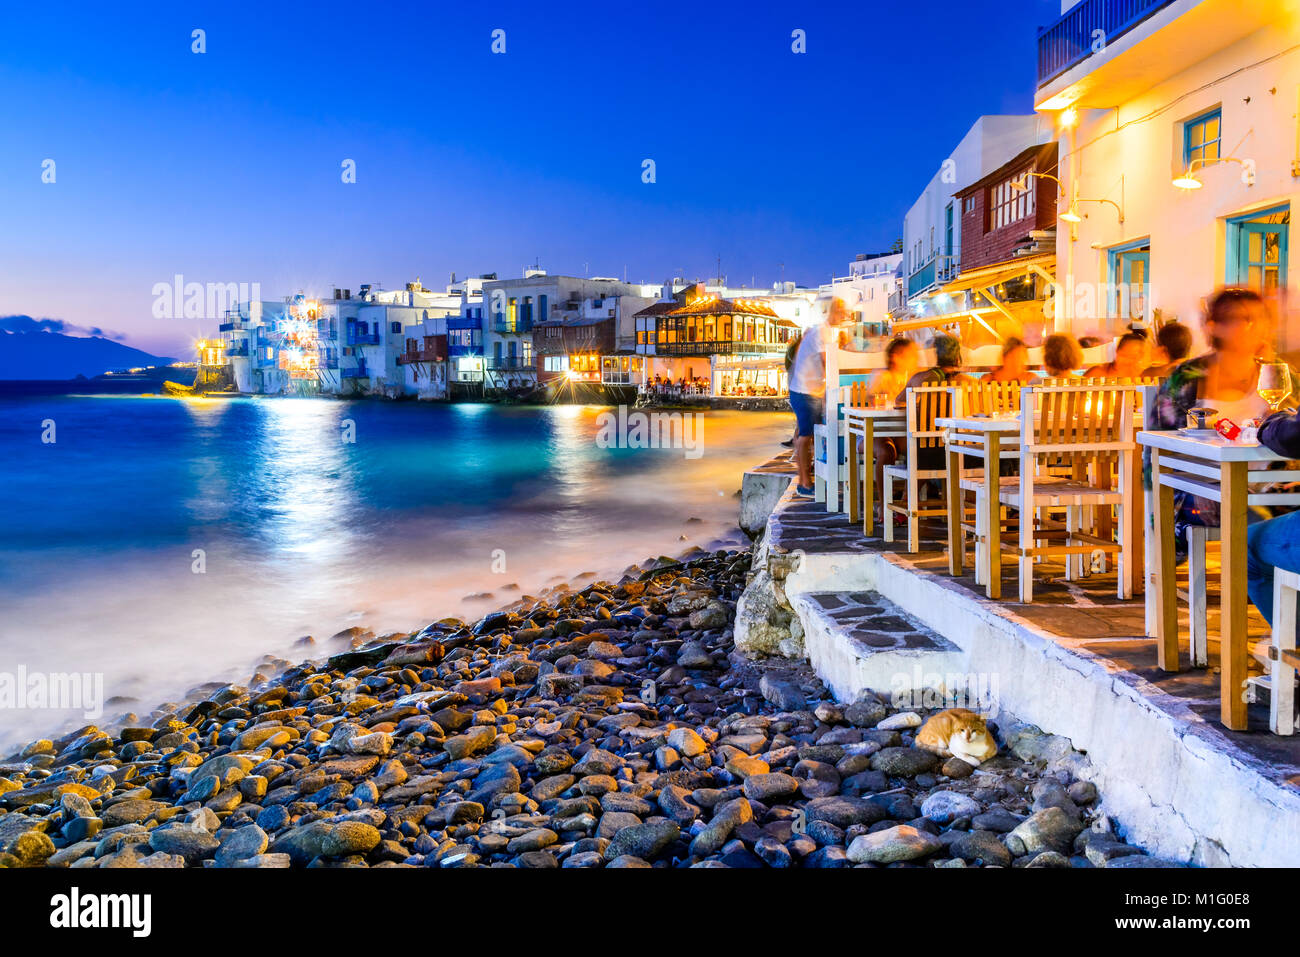 Mykonos, Greece. Little Venice waterfront houses, considered one of the most romantic places on the Cyclades Islands. - Stock Image